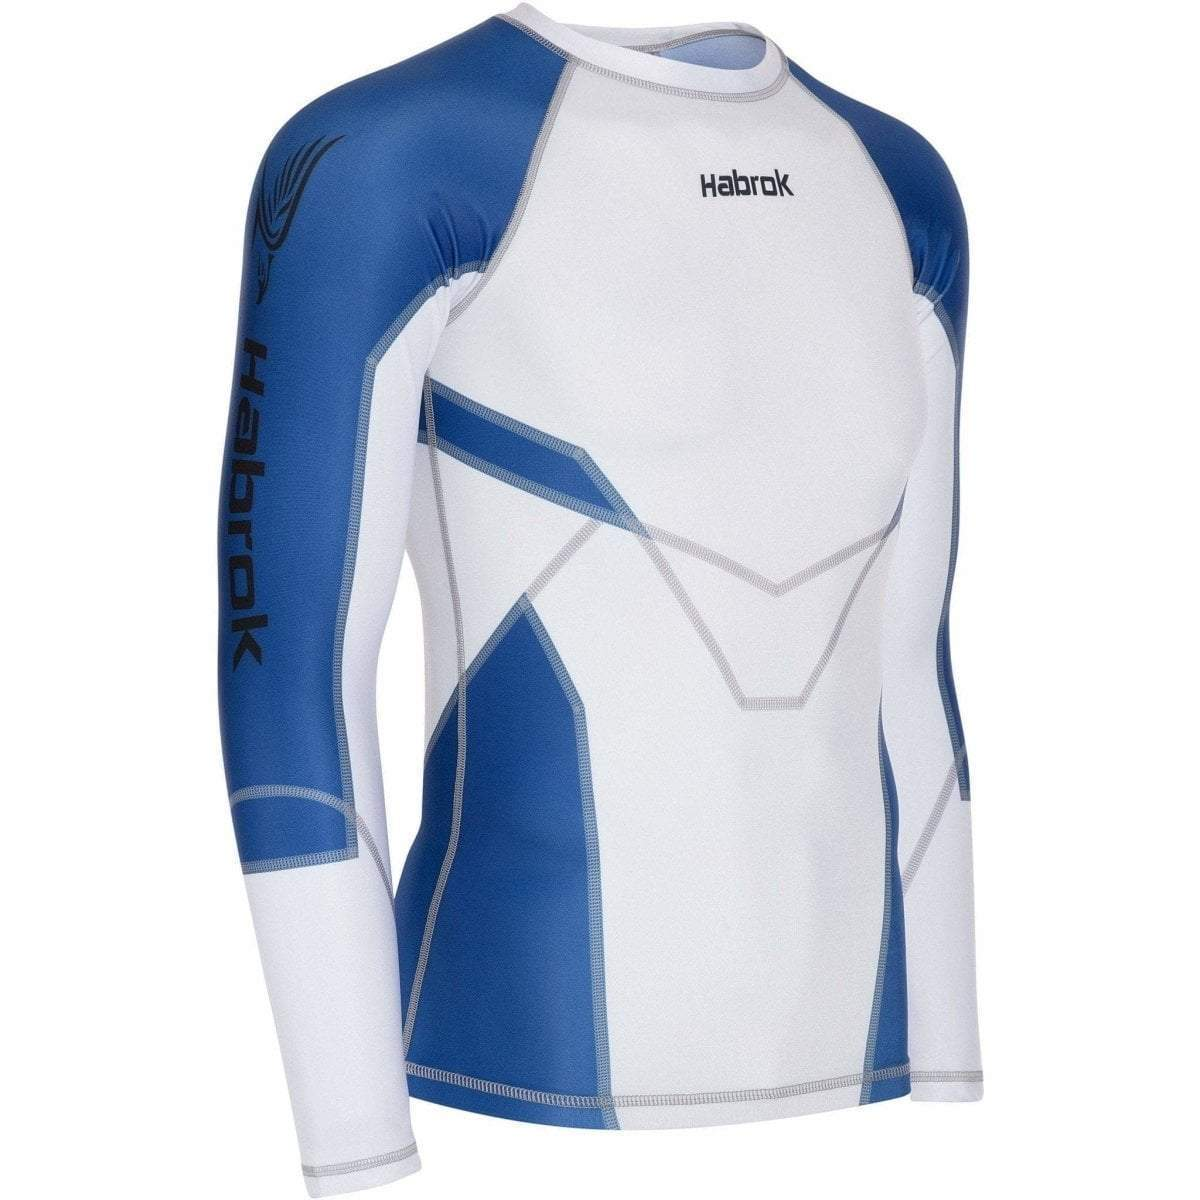 Habrok Rash Guard S / BLUE Transform 2.5 | Rash Guard | Men